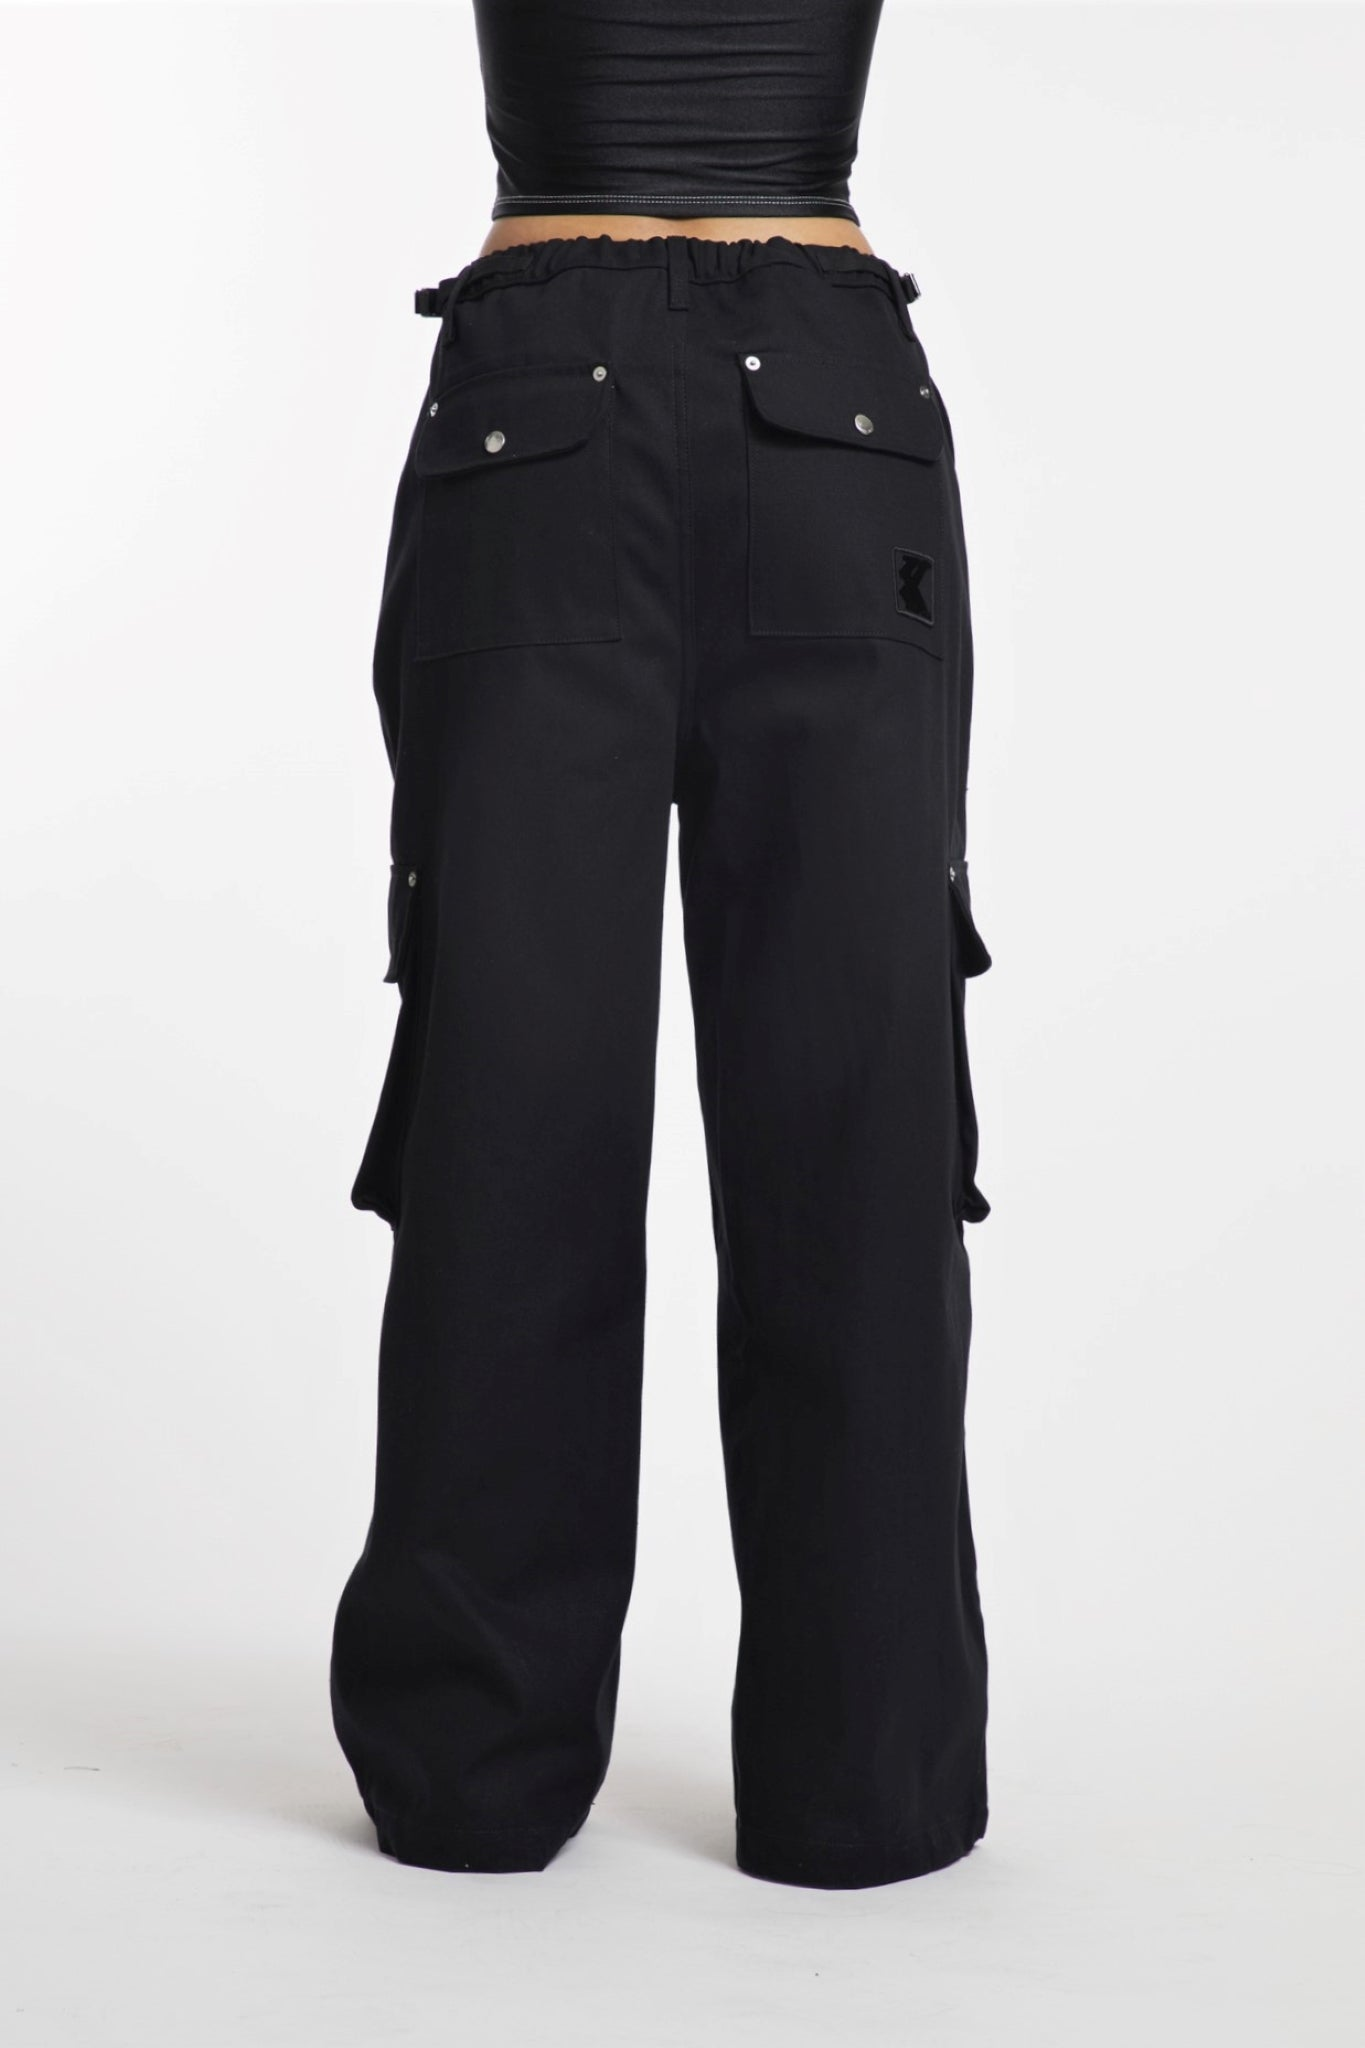 Bury Me a G Cargo Pants (Black)